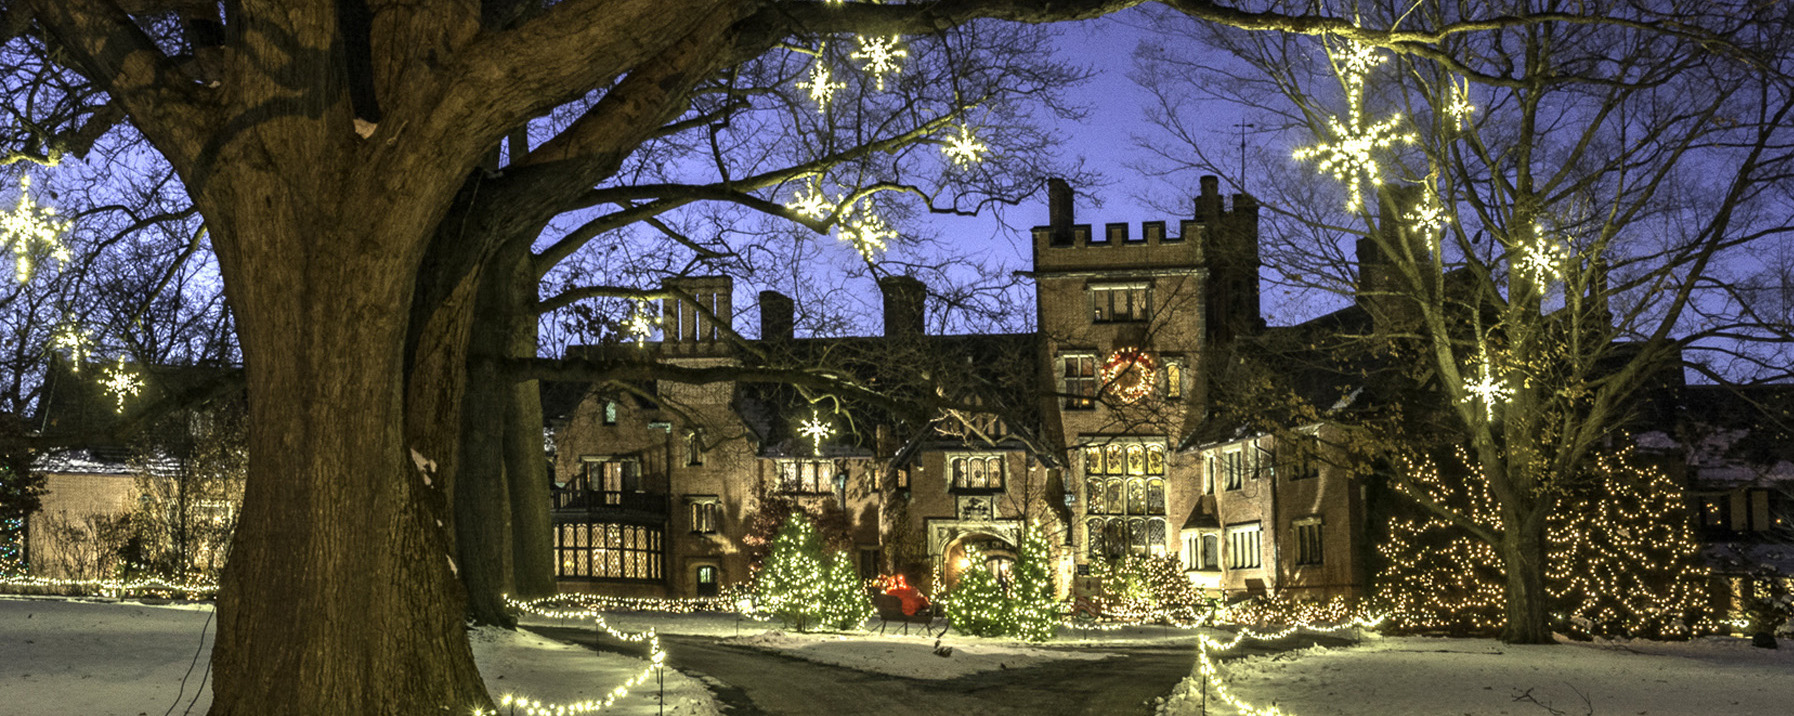 Holiday decorations Stan Hywet Hall & Gardens Akron Ohio